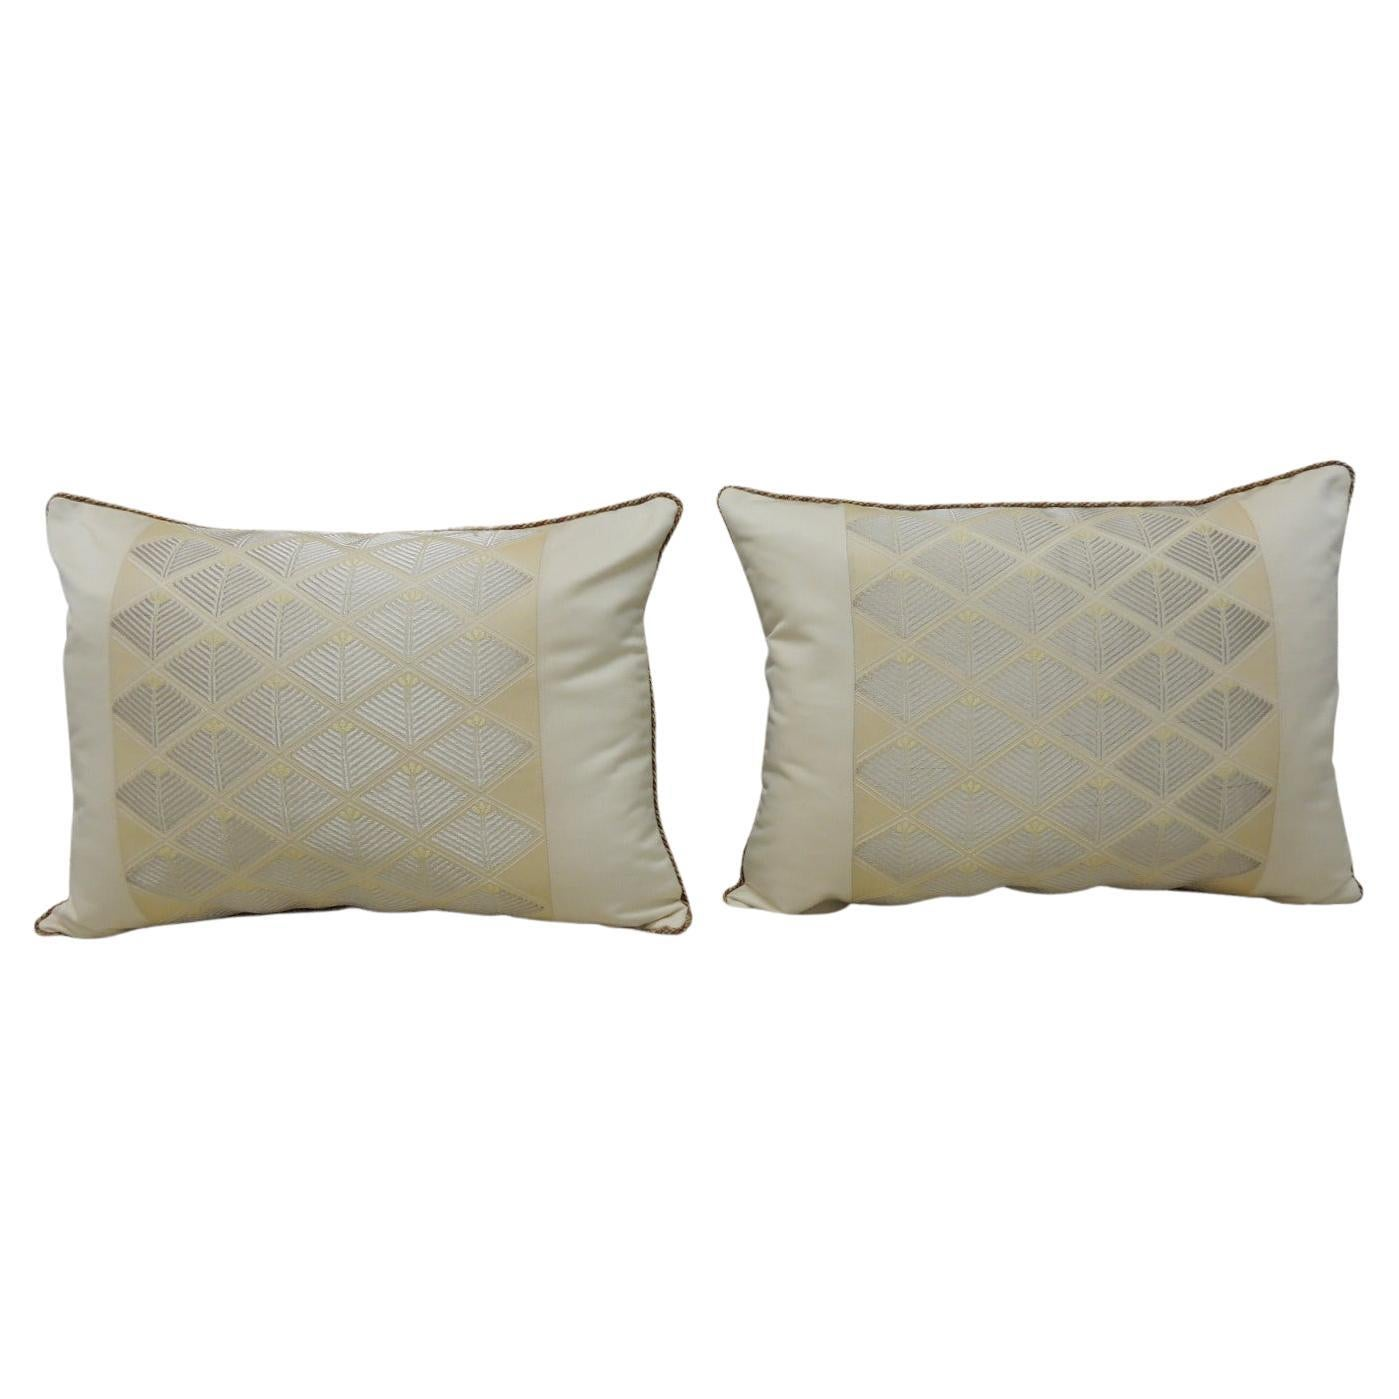 Pair of Vintage Woven Silk Gold and Silver Obi Bolsters Decorative Pillows